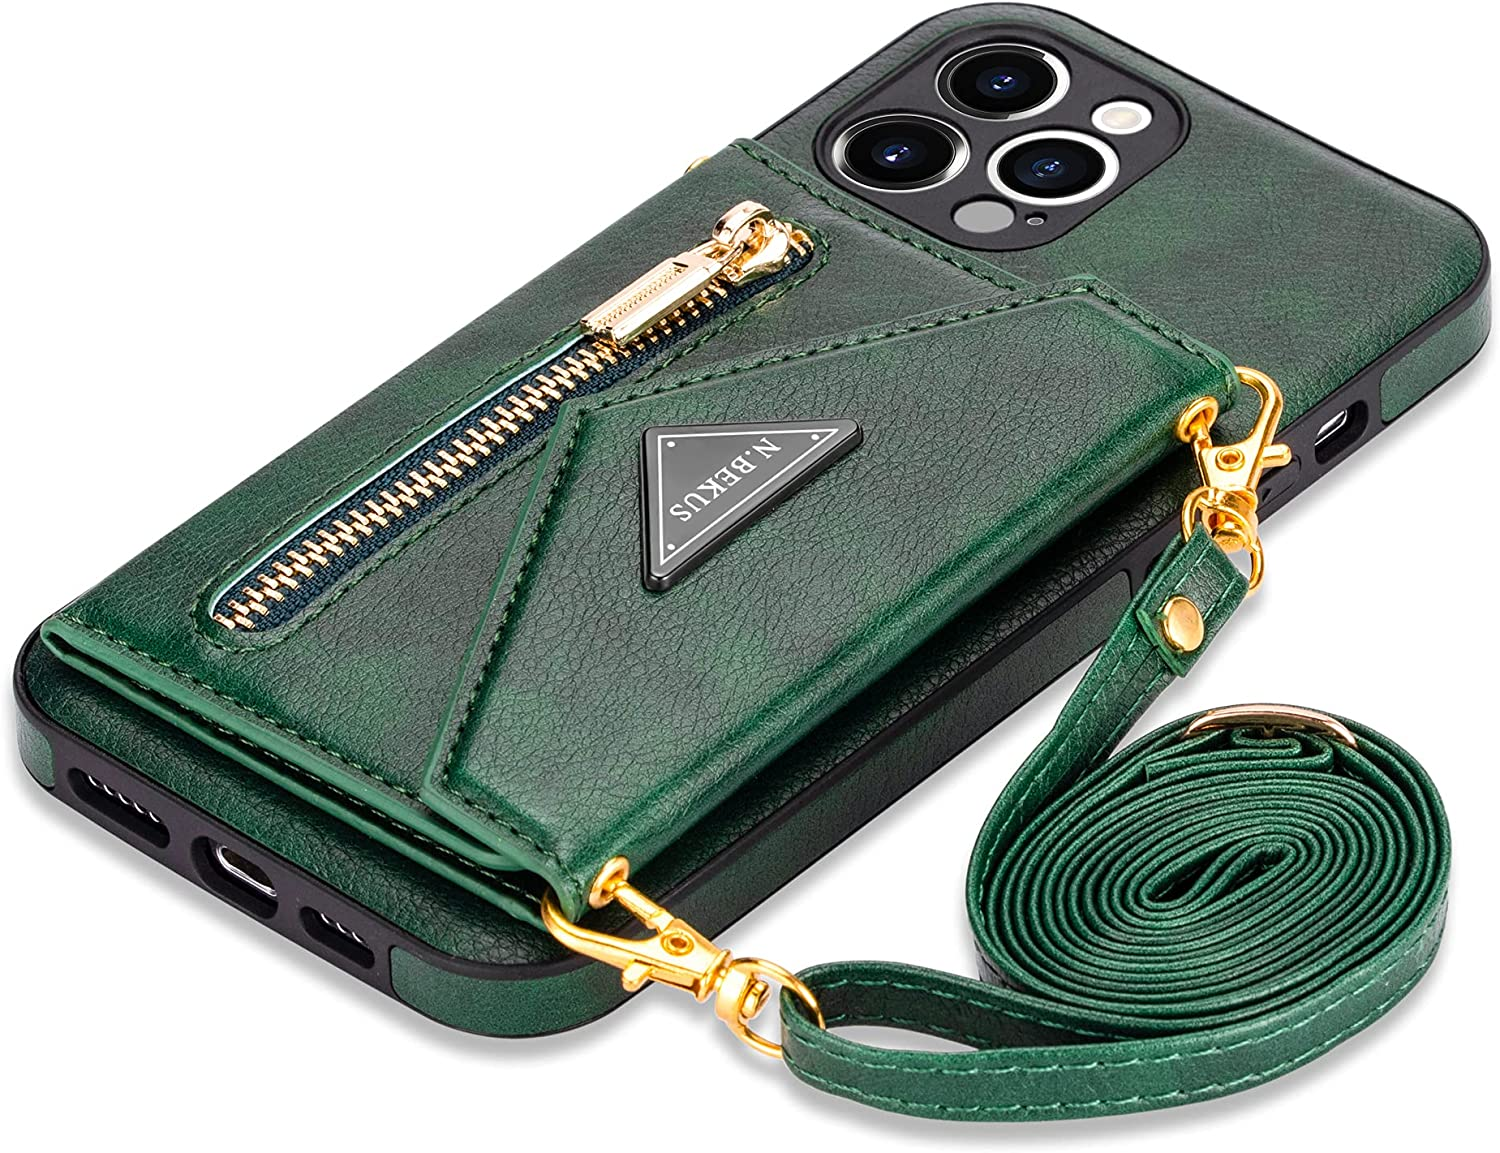 Shoulder Strap Leather Case for iPhone 12 6.1 inch Wallet Bumper Cover, Shockproof Stand Lanyard Crossbody Case (Green,iPhone 12)